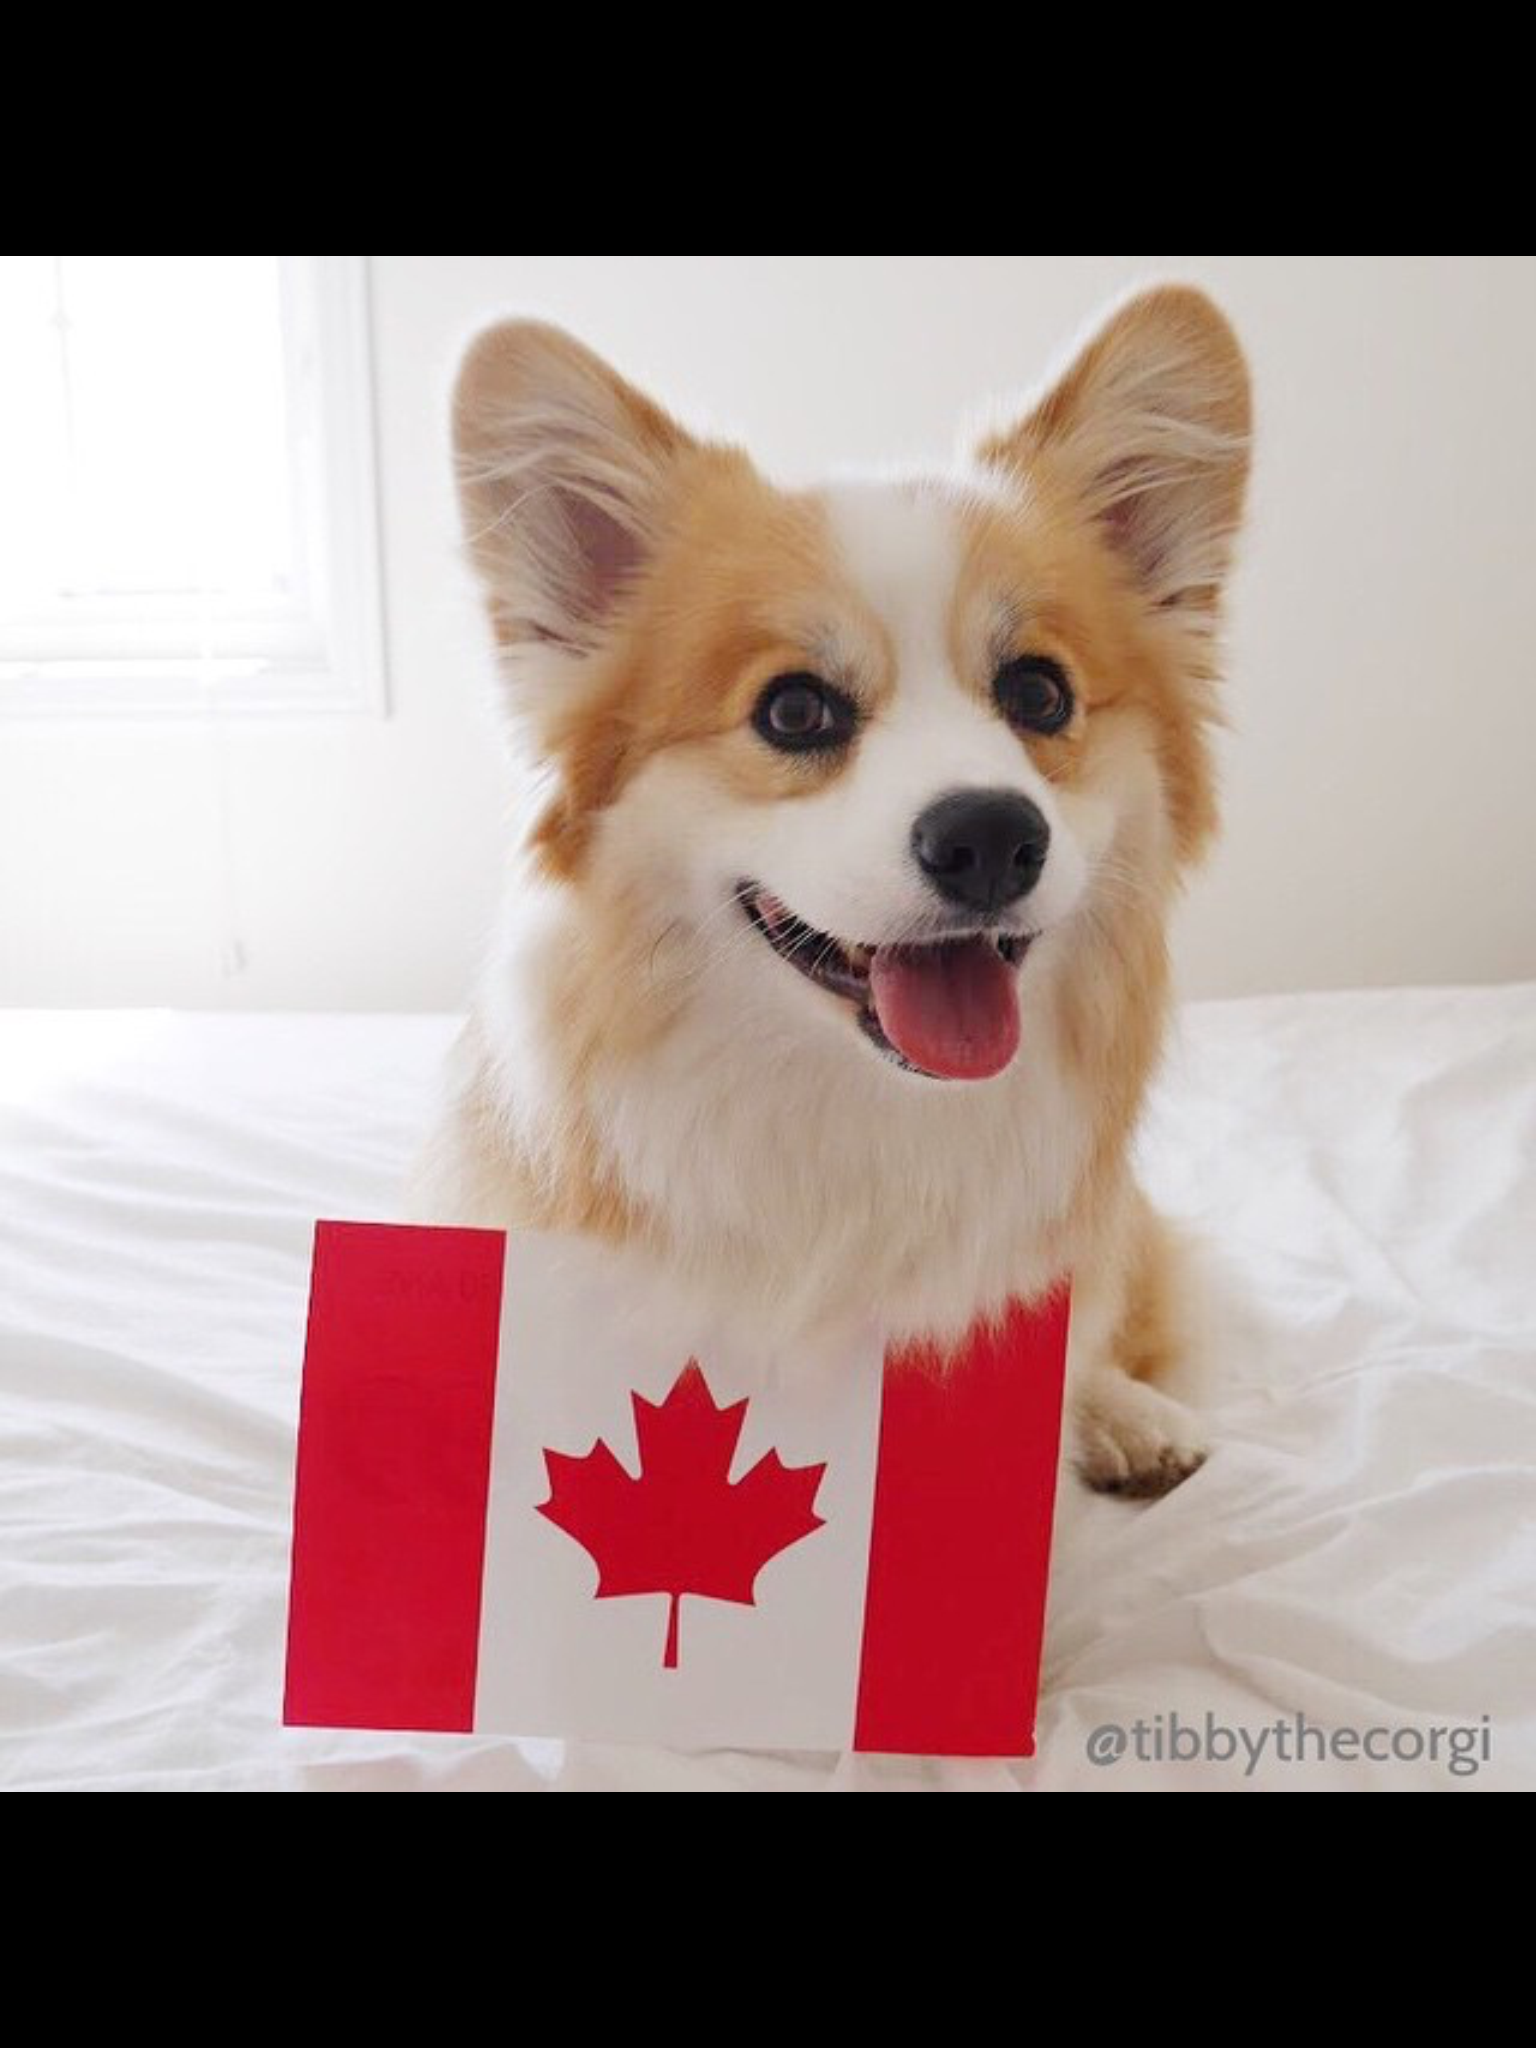 Pin By Cookie441 On Corgis Only Corgi Dogs Animals